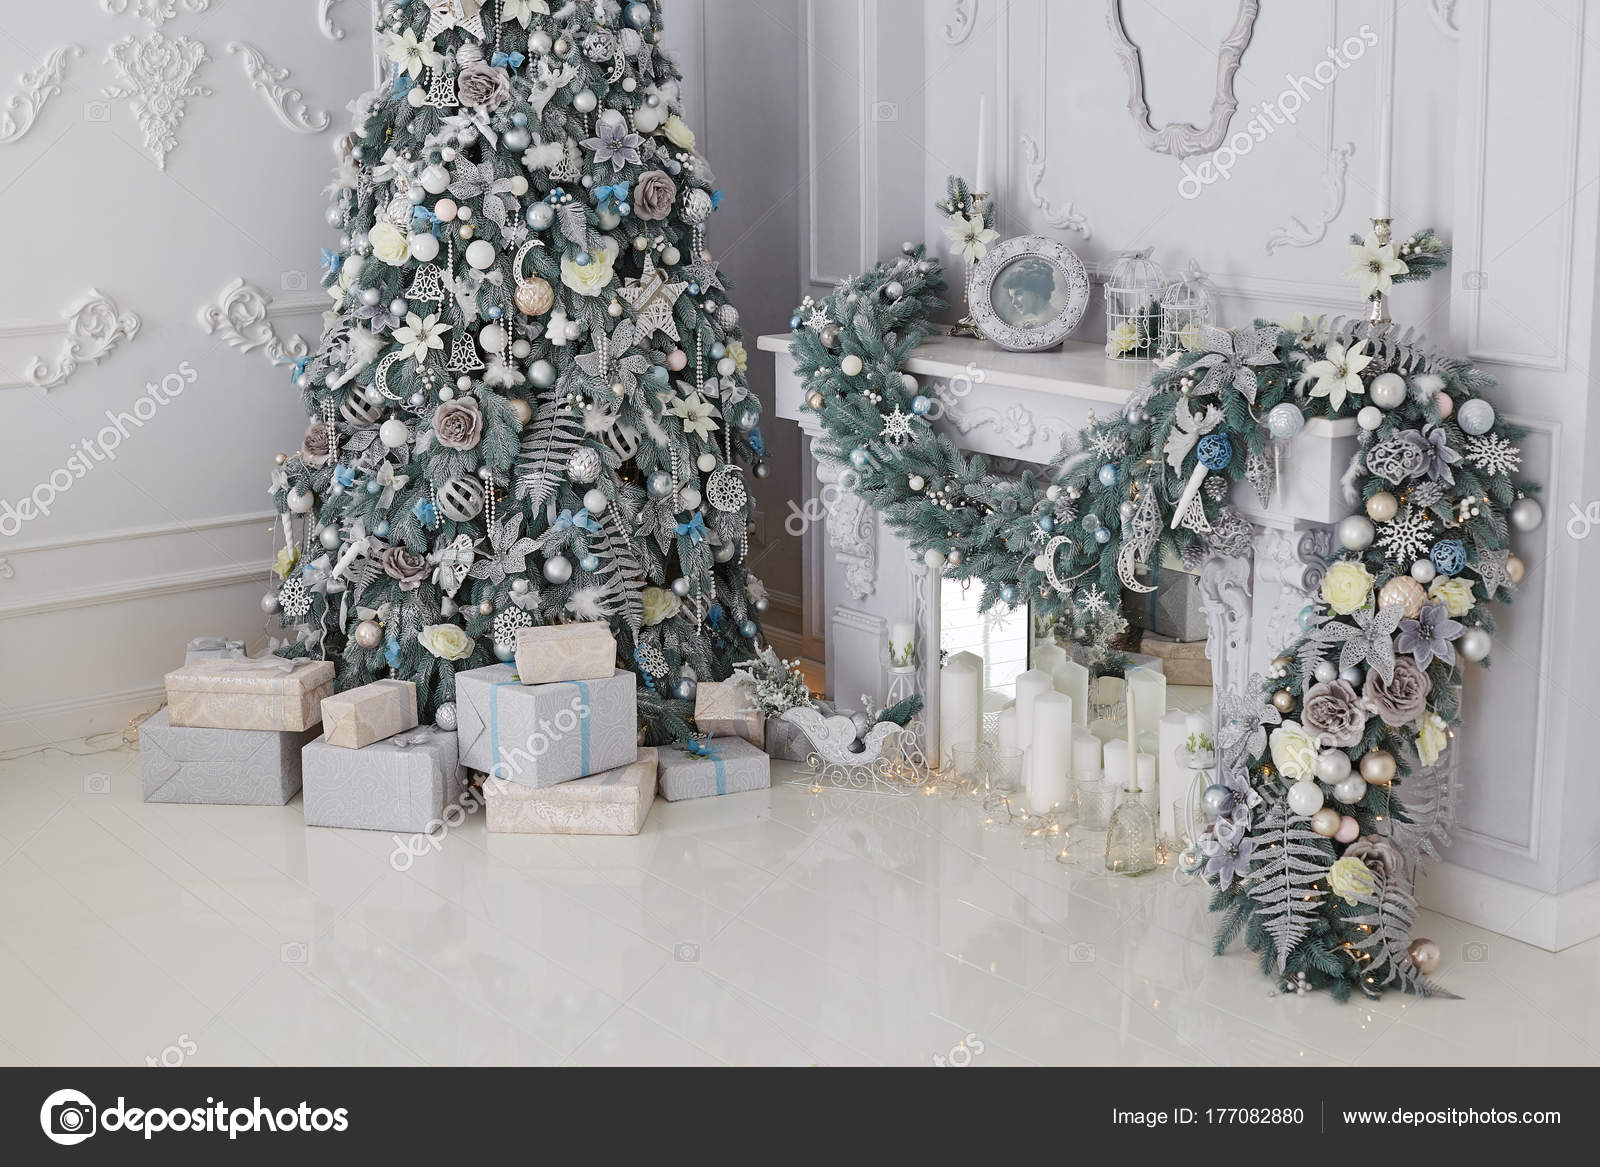 Beautiful Holiday Decorated Room Christmas Tree Presents White Silver Christmas Stock Photo Image By C Ovcharenkoviktoria 177082880